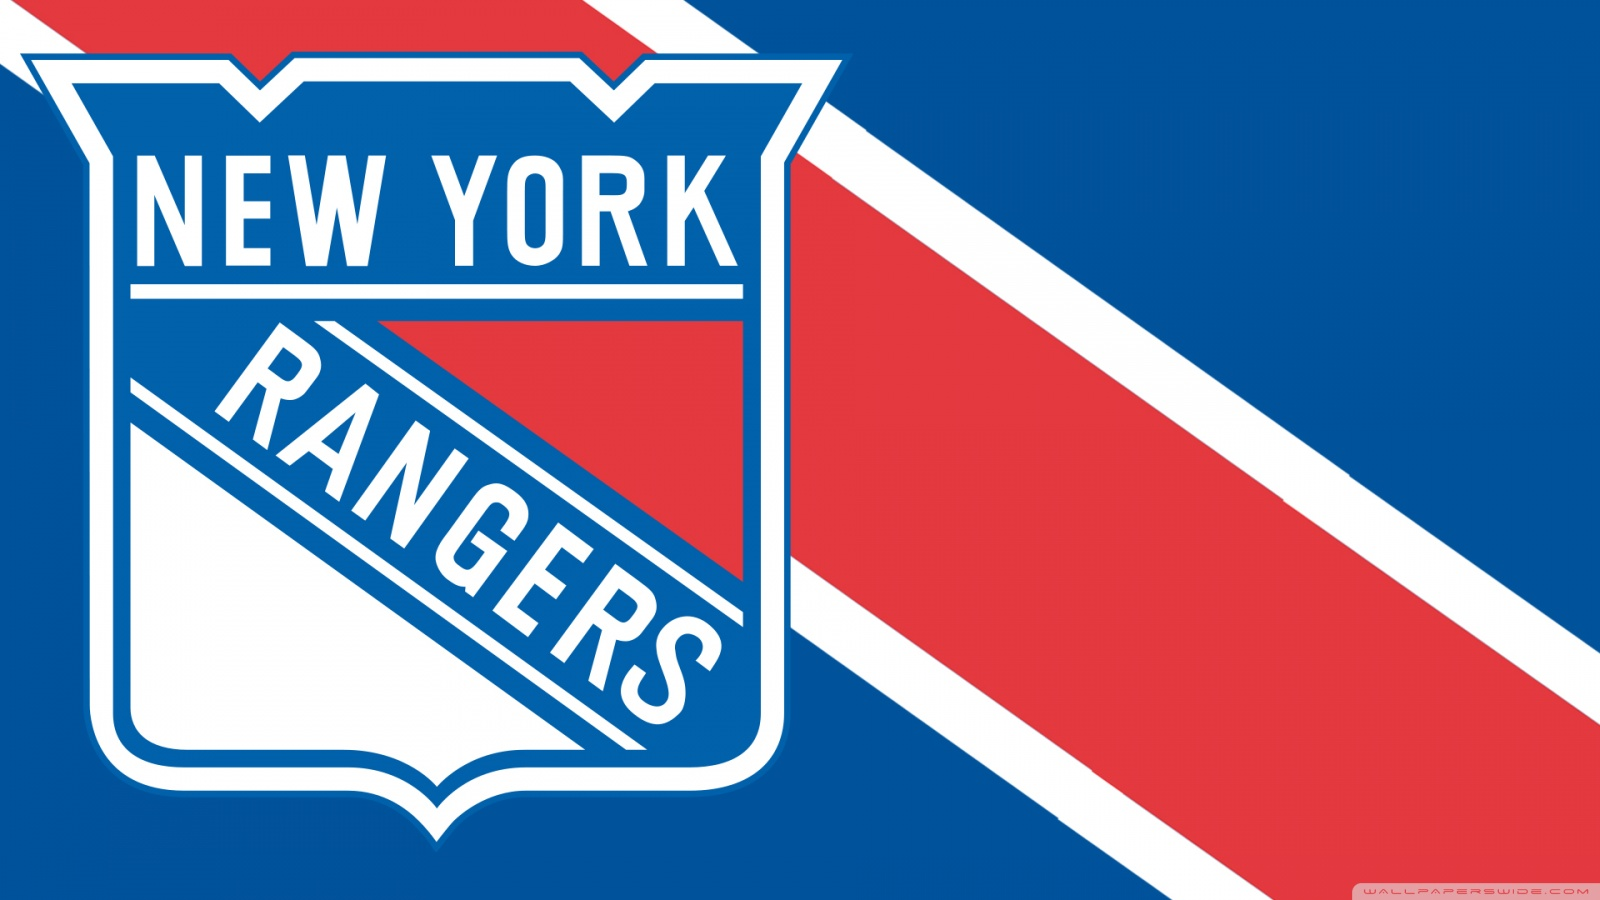 New York Rangers HD desktop wallpaper : Widescreen : High